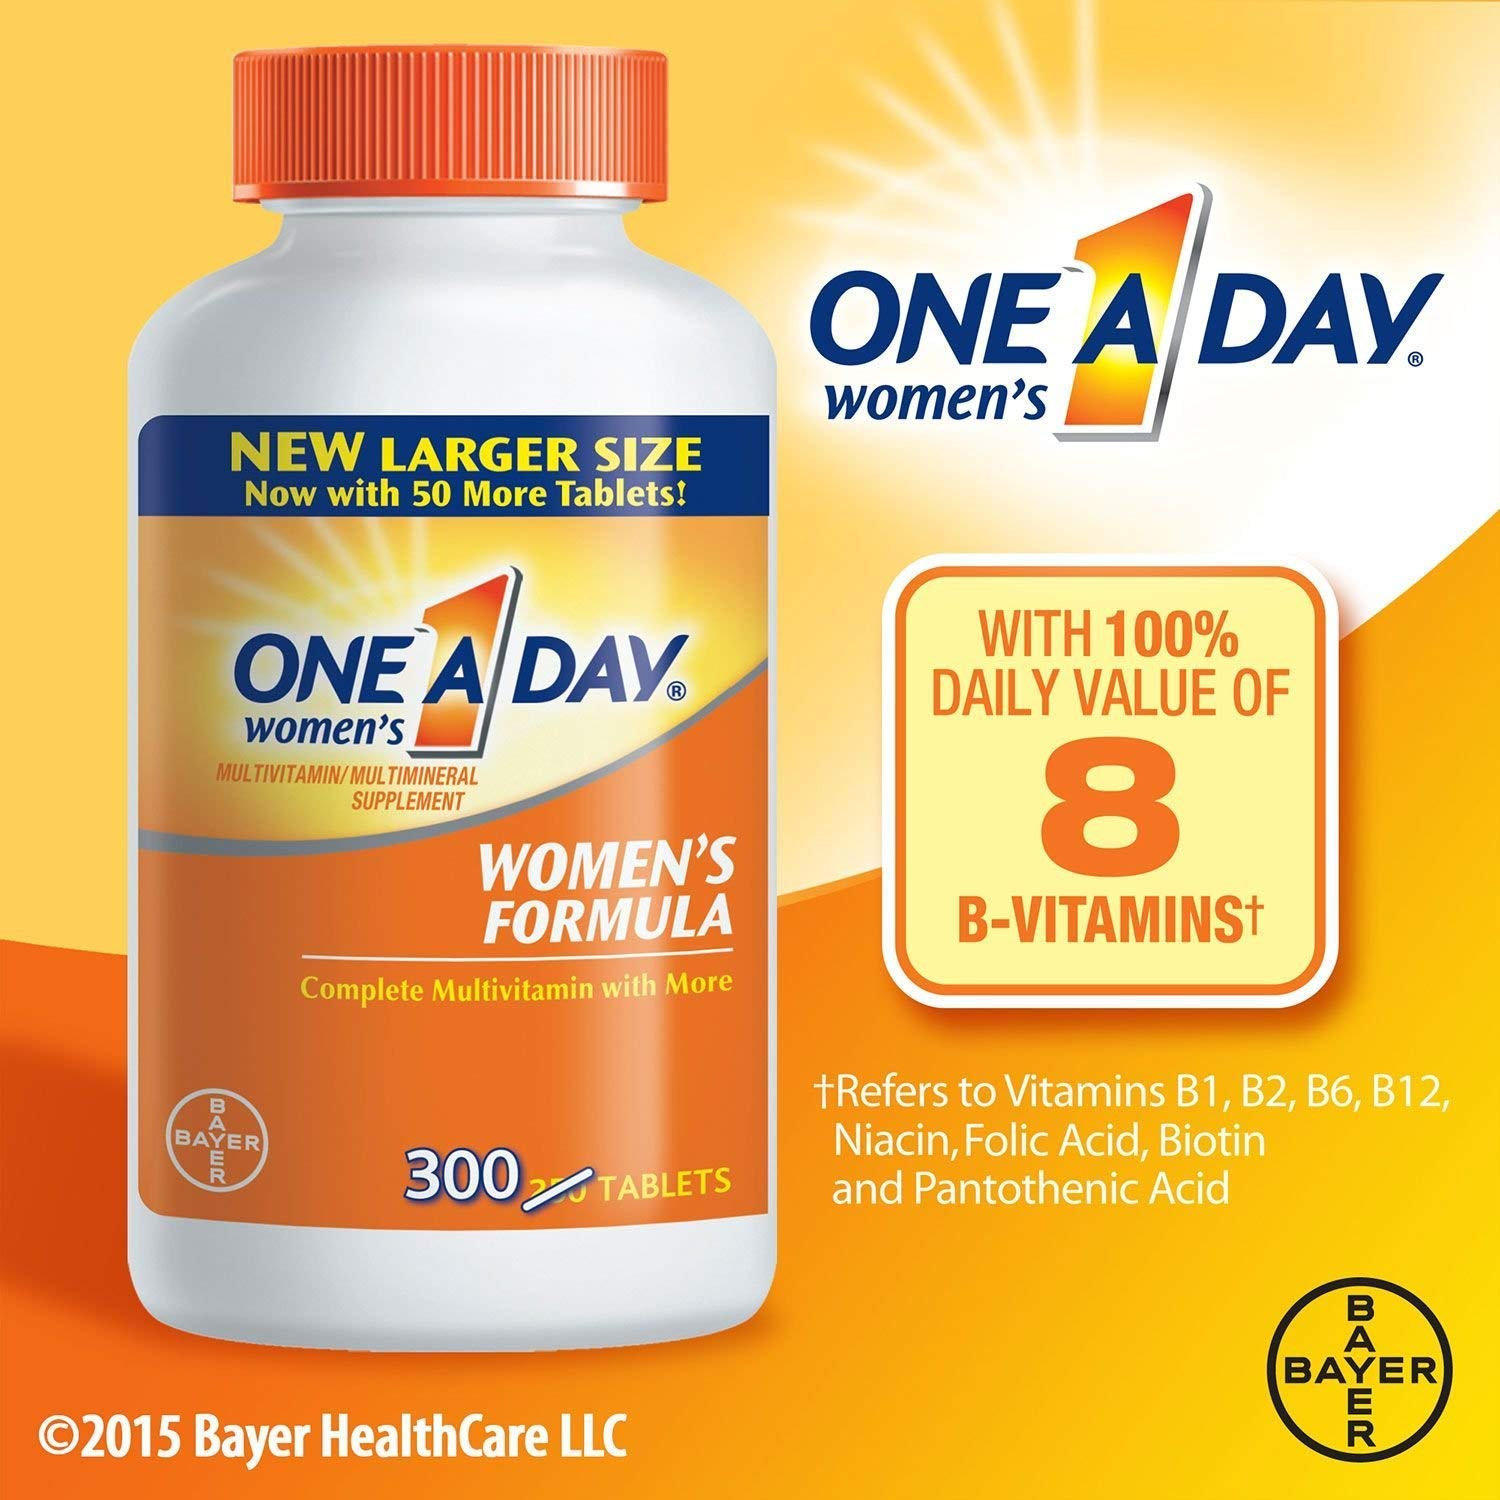 One A Day Women s Health Formula Multivitamin 300 ct.